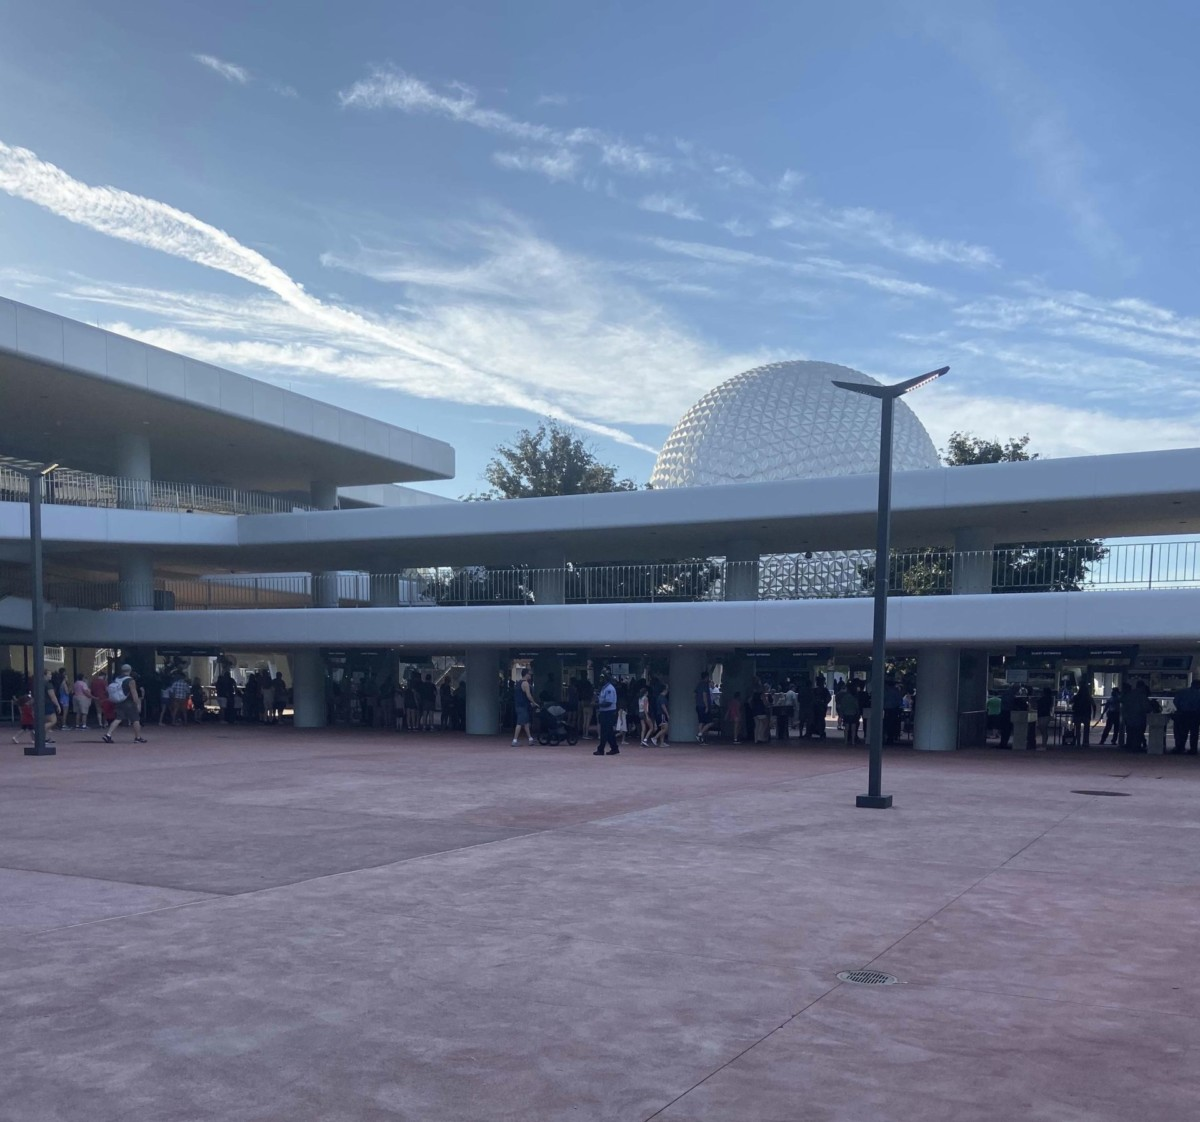 New Security Bag Check Area at Epcot! 1